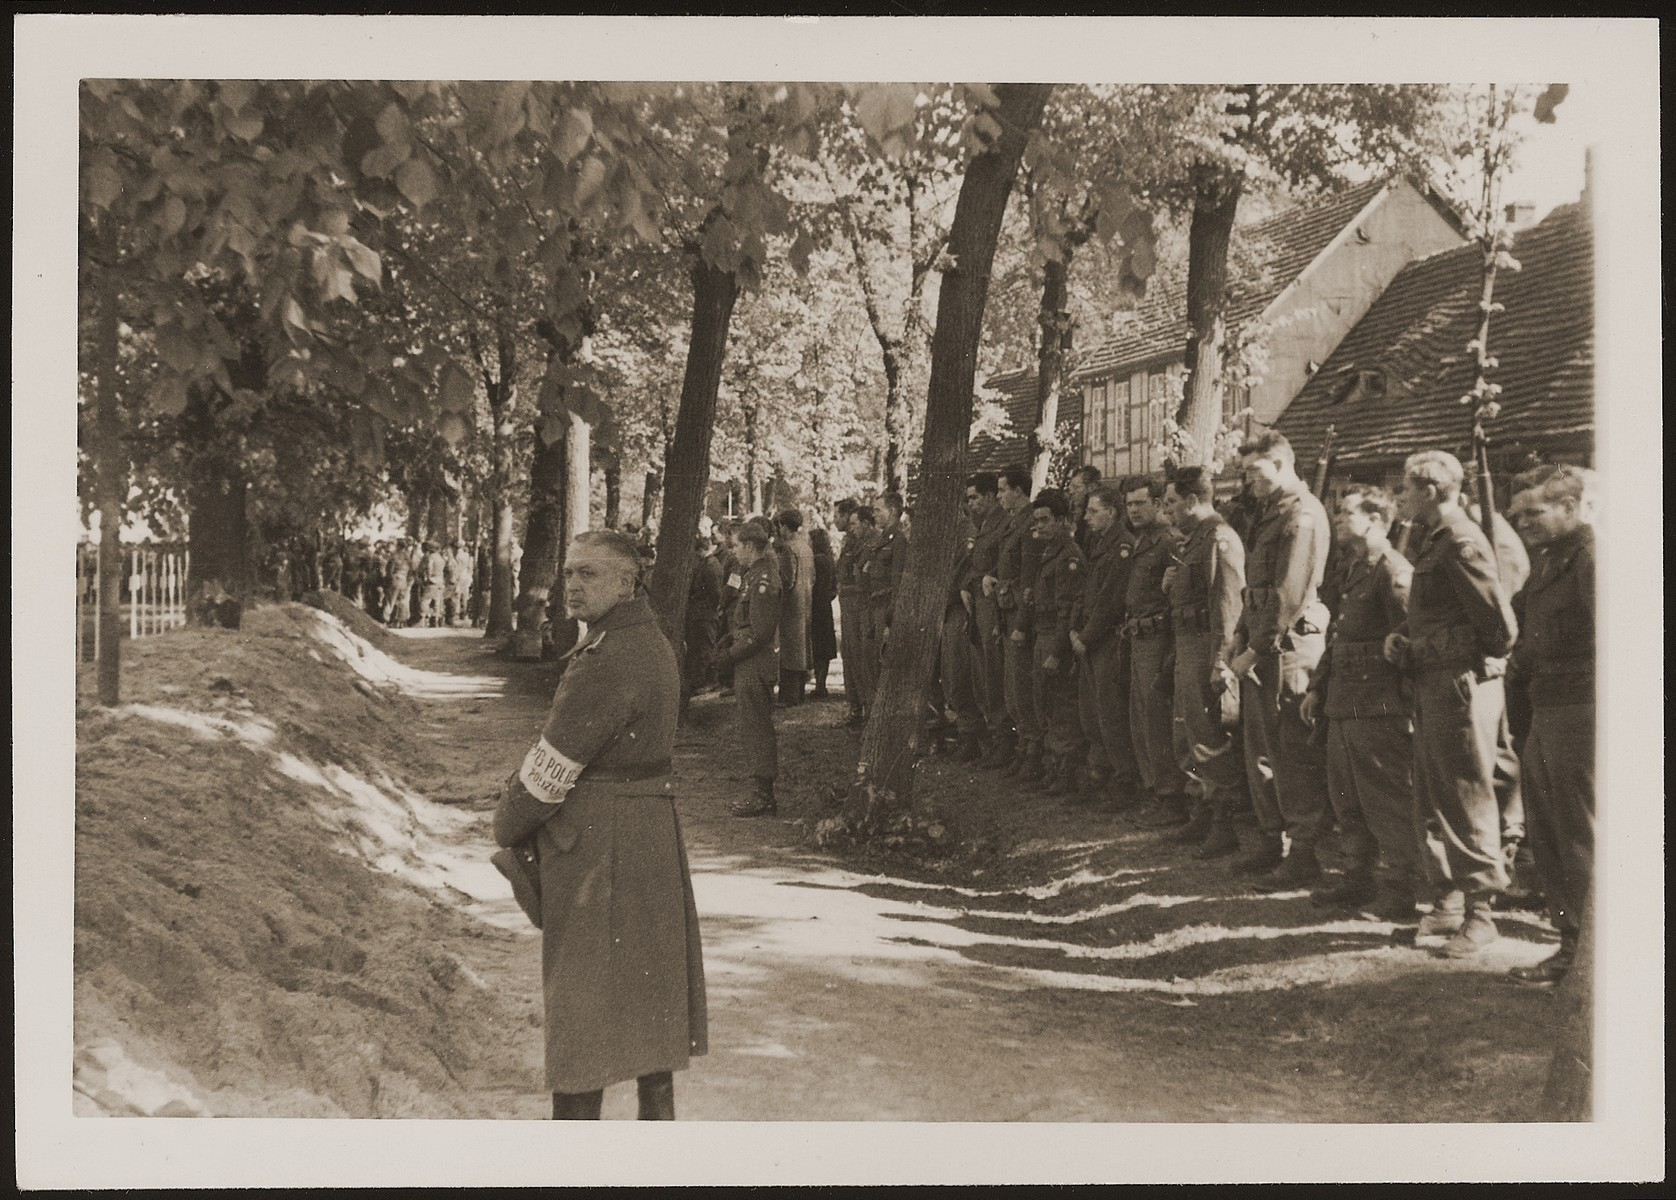 American soldiers and a German policeman observe a moment of silence at a mass funeral on the palace grounds of the Archduke of Mecklenburg, where the townspeople were forced by U.S. troops to bury the corpses of prisoners killed in the Woebbelin concentration camp .